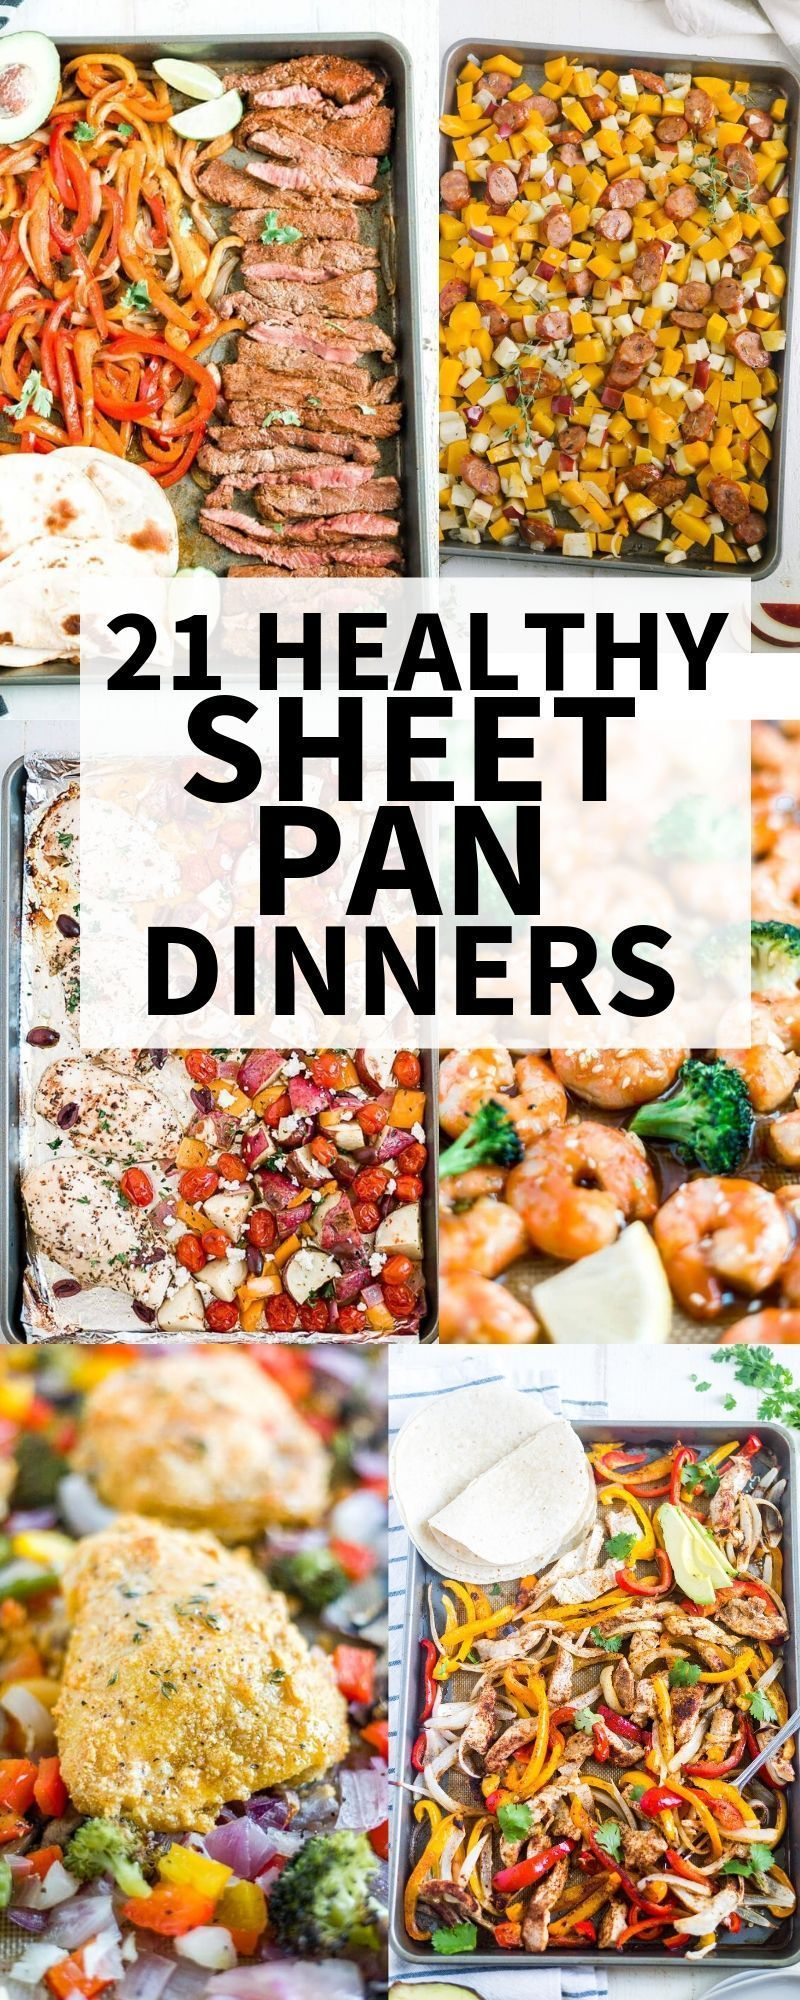 21 Healthy Sheet Pan Dinners | What Molly Made #onepandinnerschicken